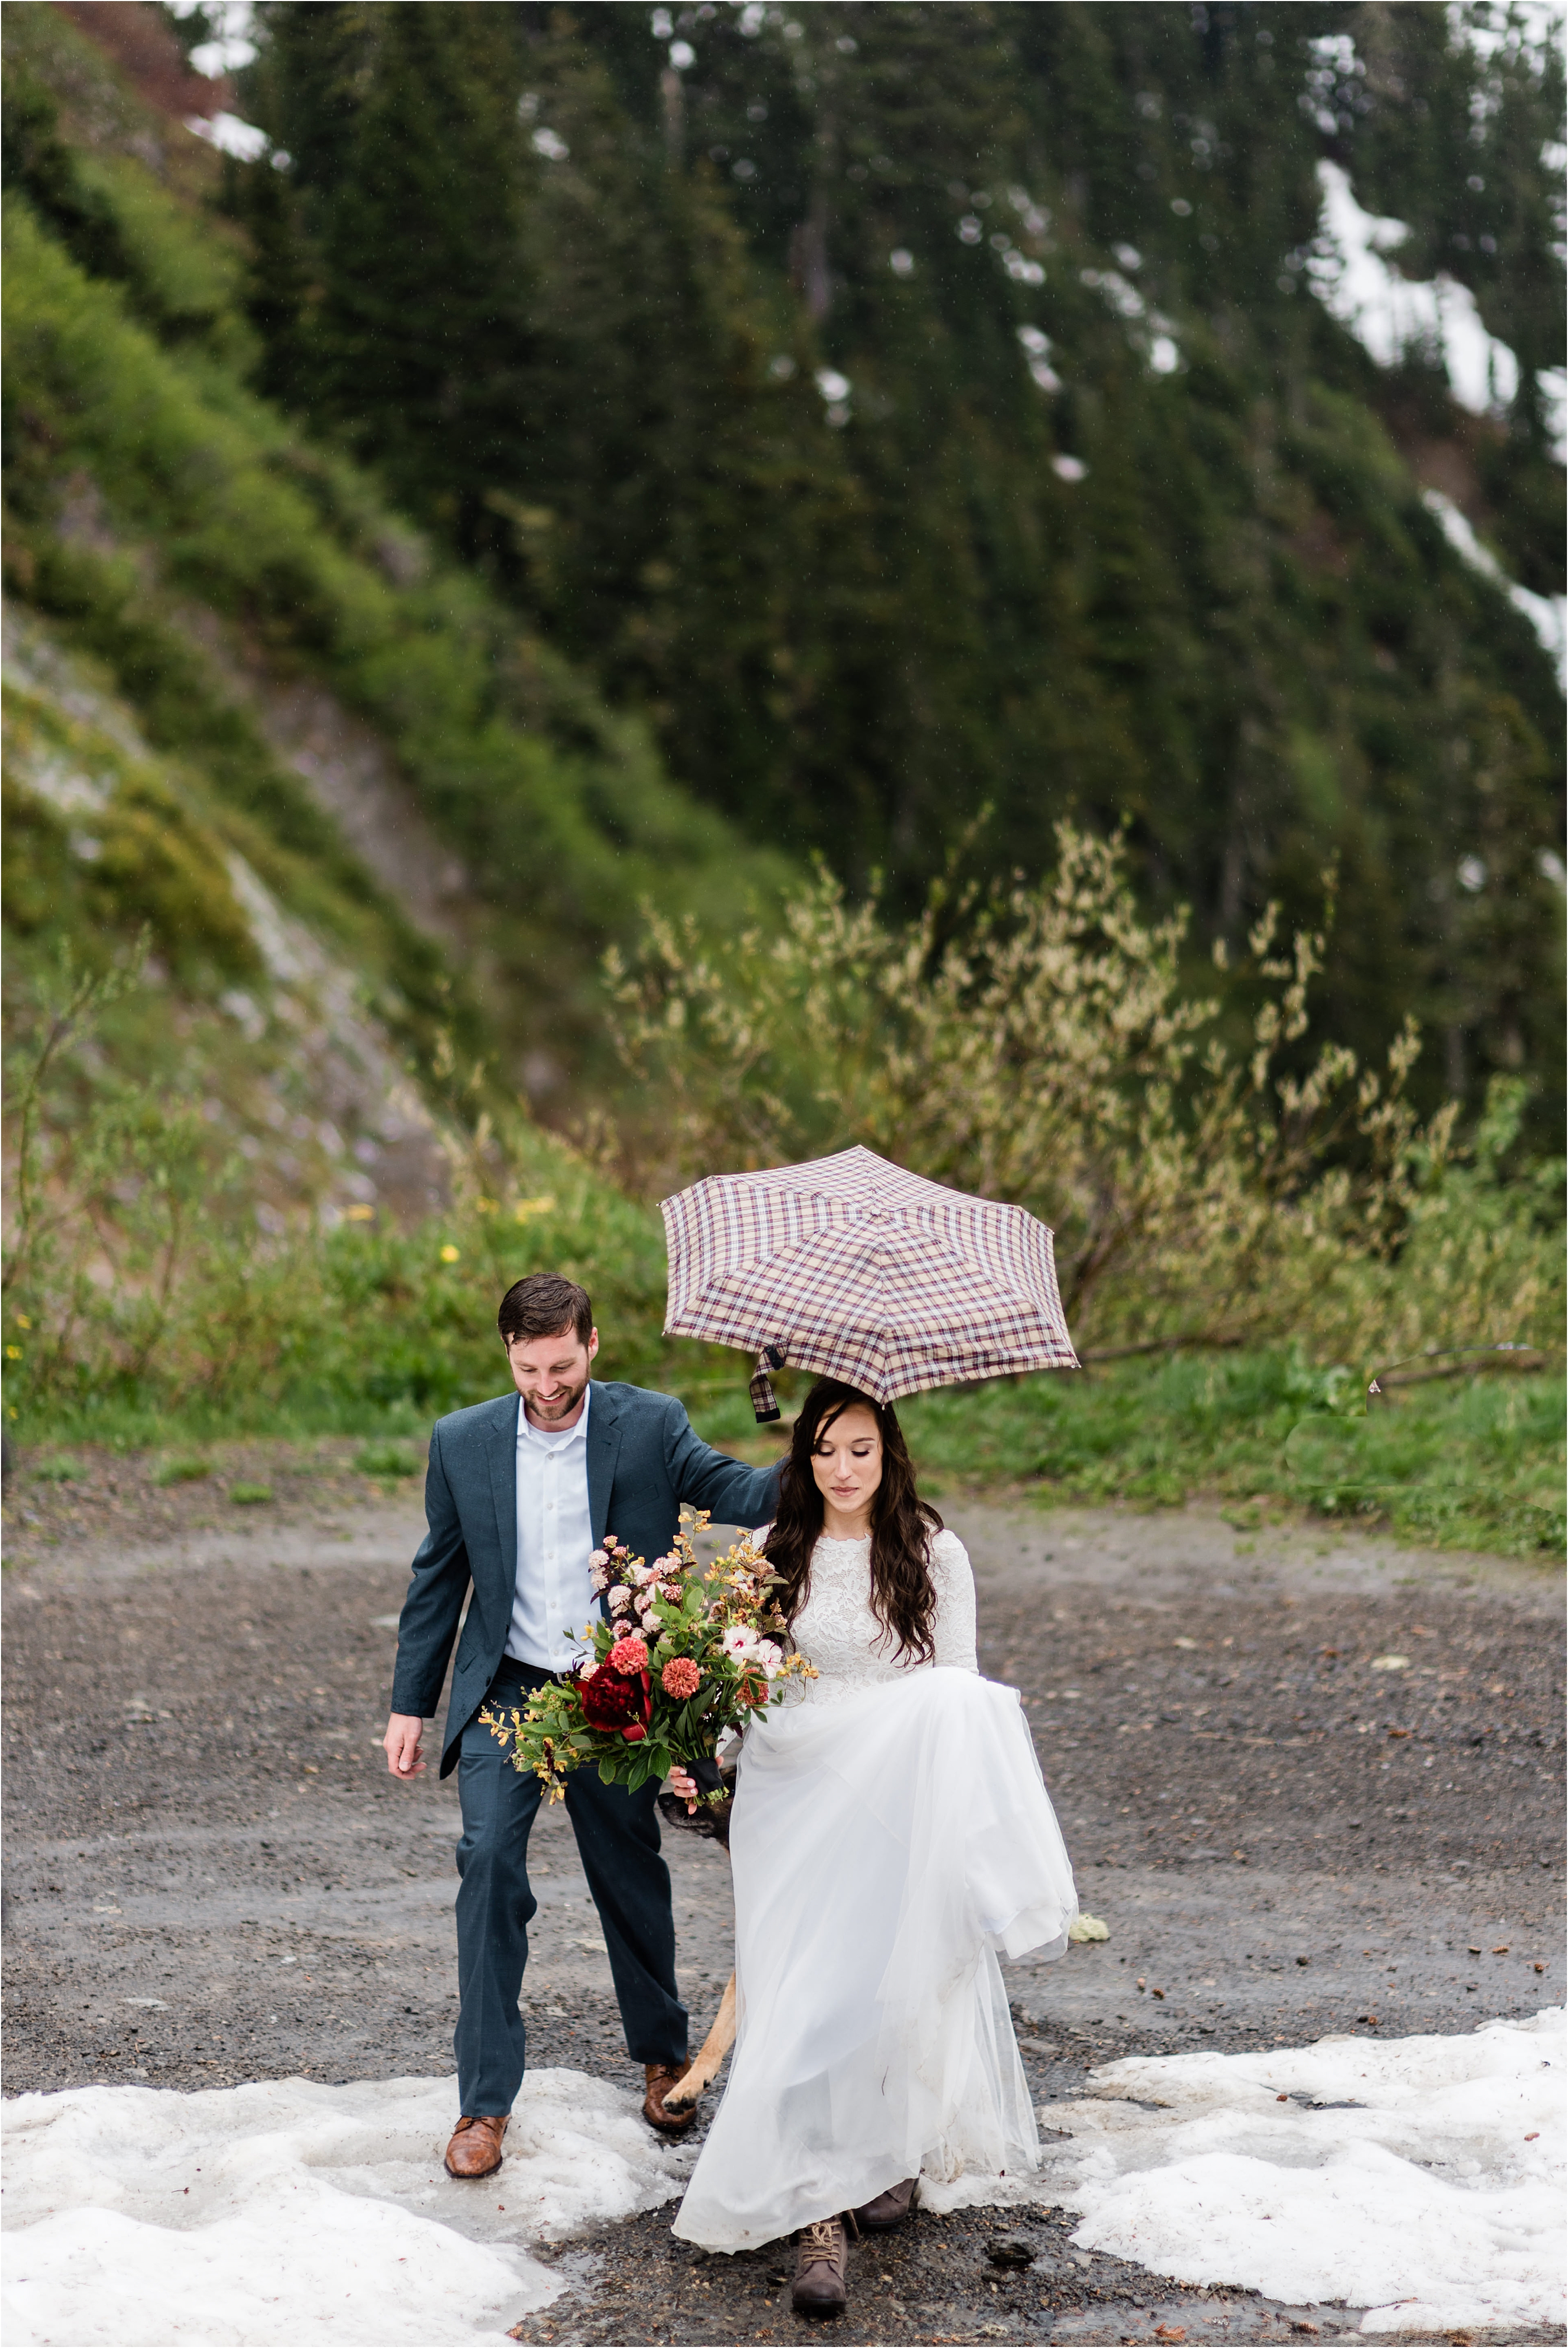 Christina & Tanner walking to their elopement ceremony on the slopes of Mt. Baker. Image by Forthright Photo, Seattle Elopement Photographers